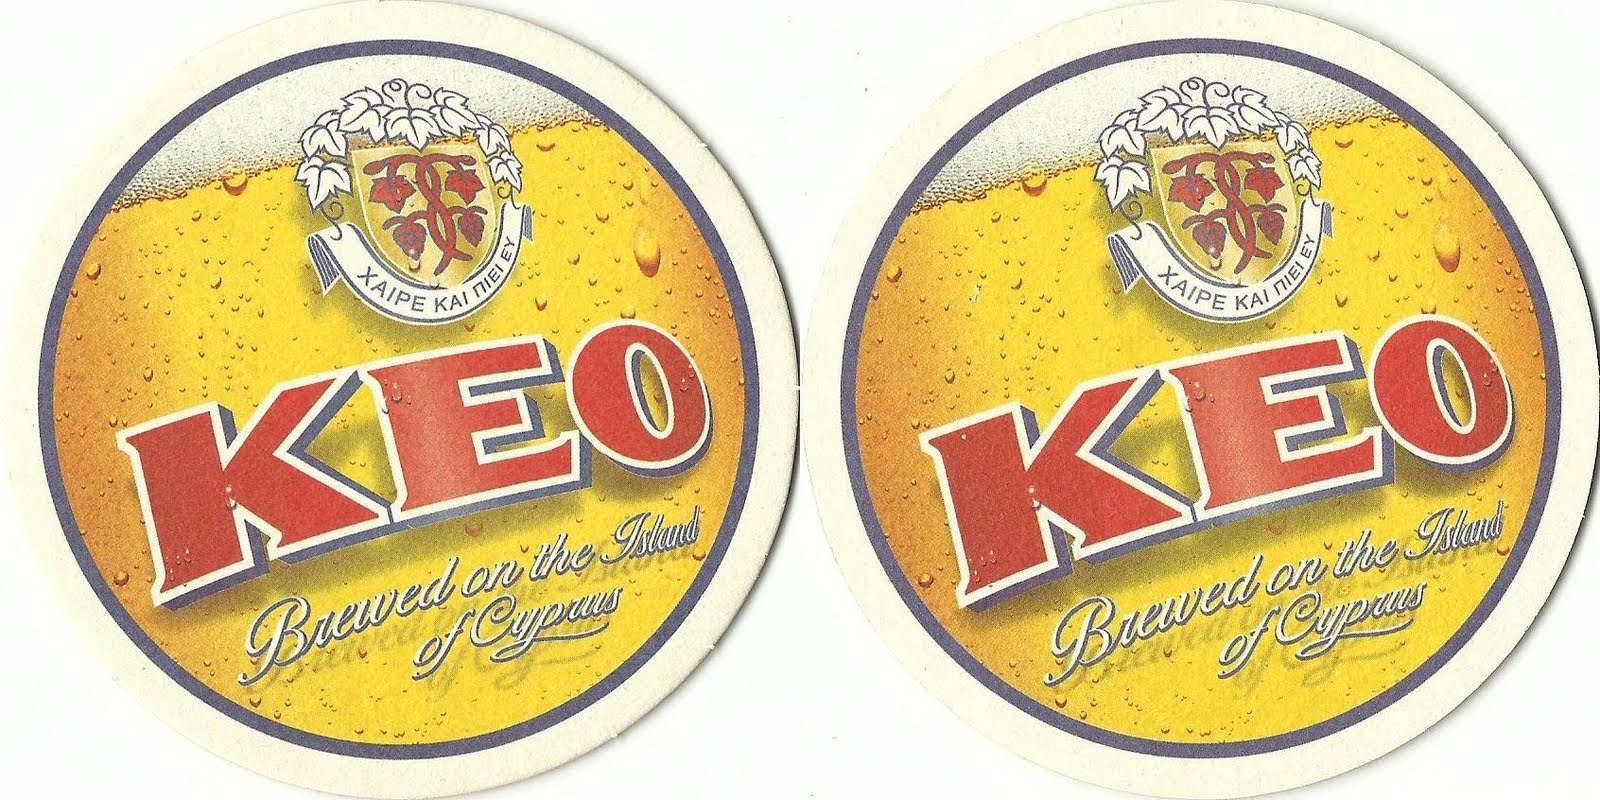 The Beer Collector Keo